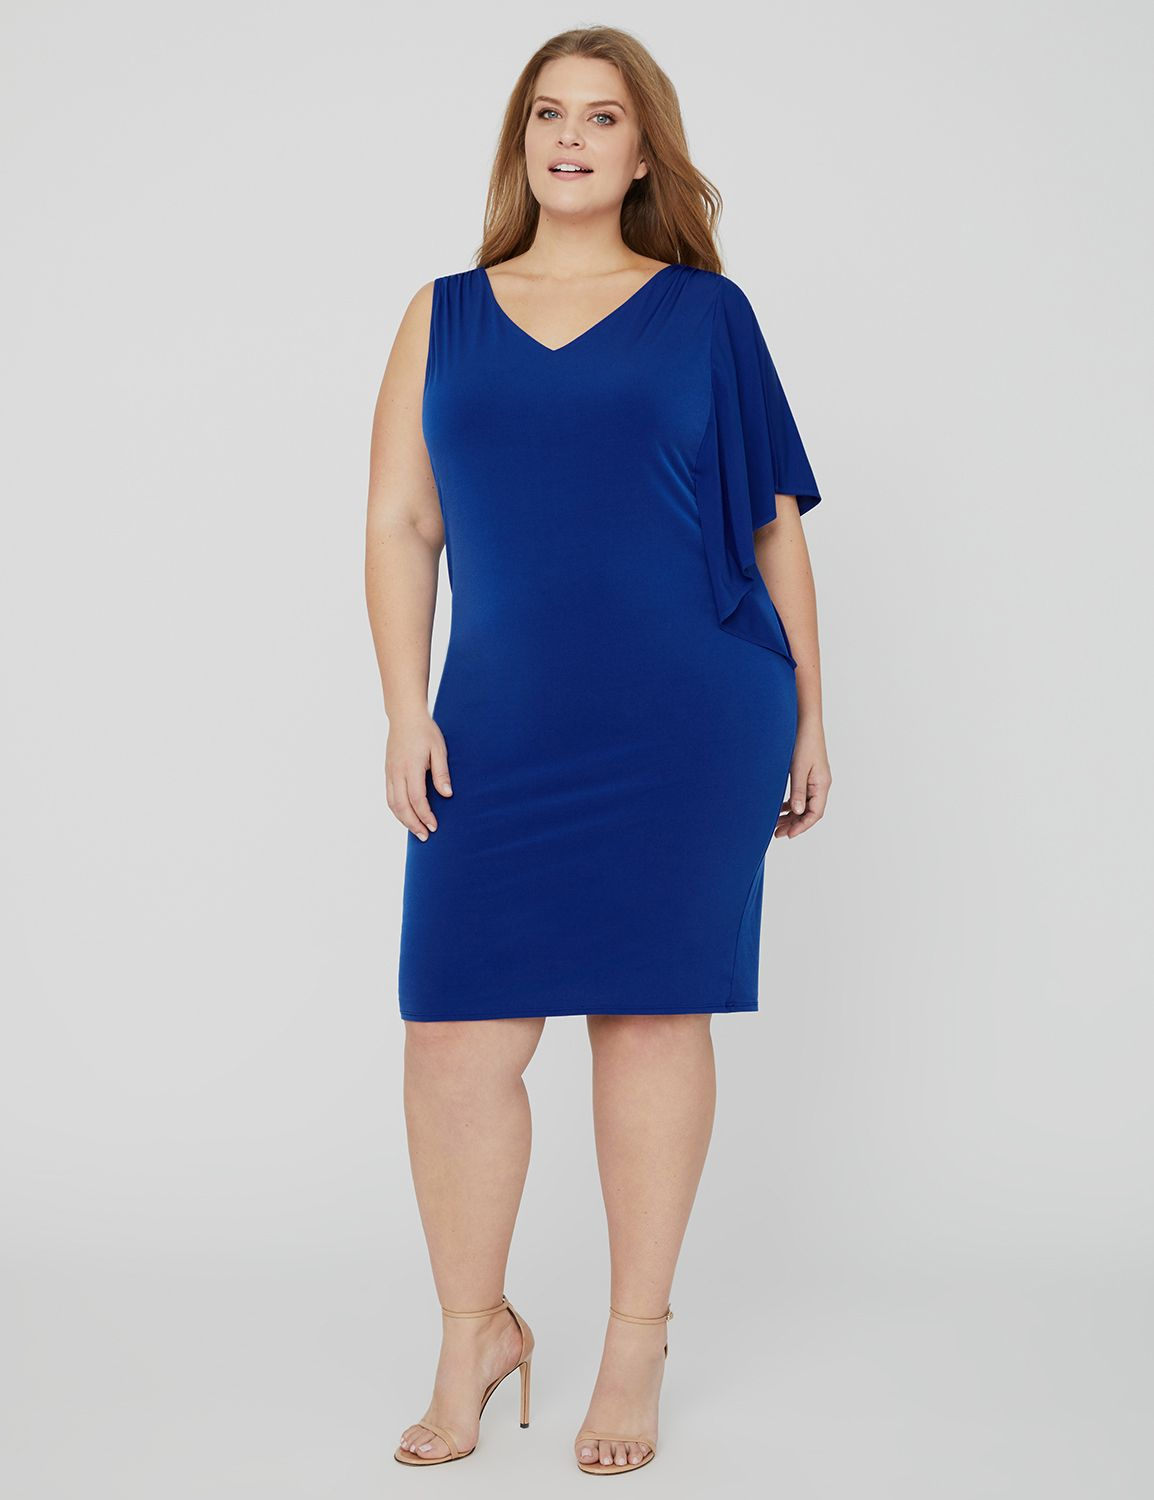 Curvy Collection One-Sleeve Dress 1090273 Curvy Collection ITY Dress MP-300098773